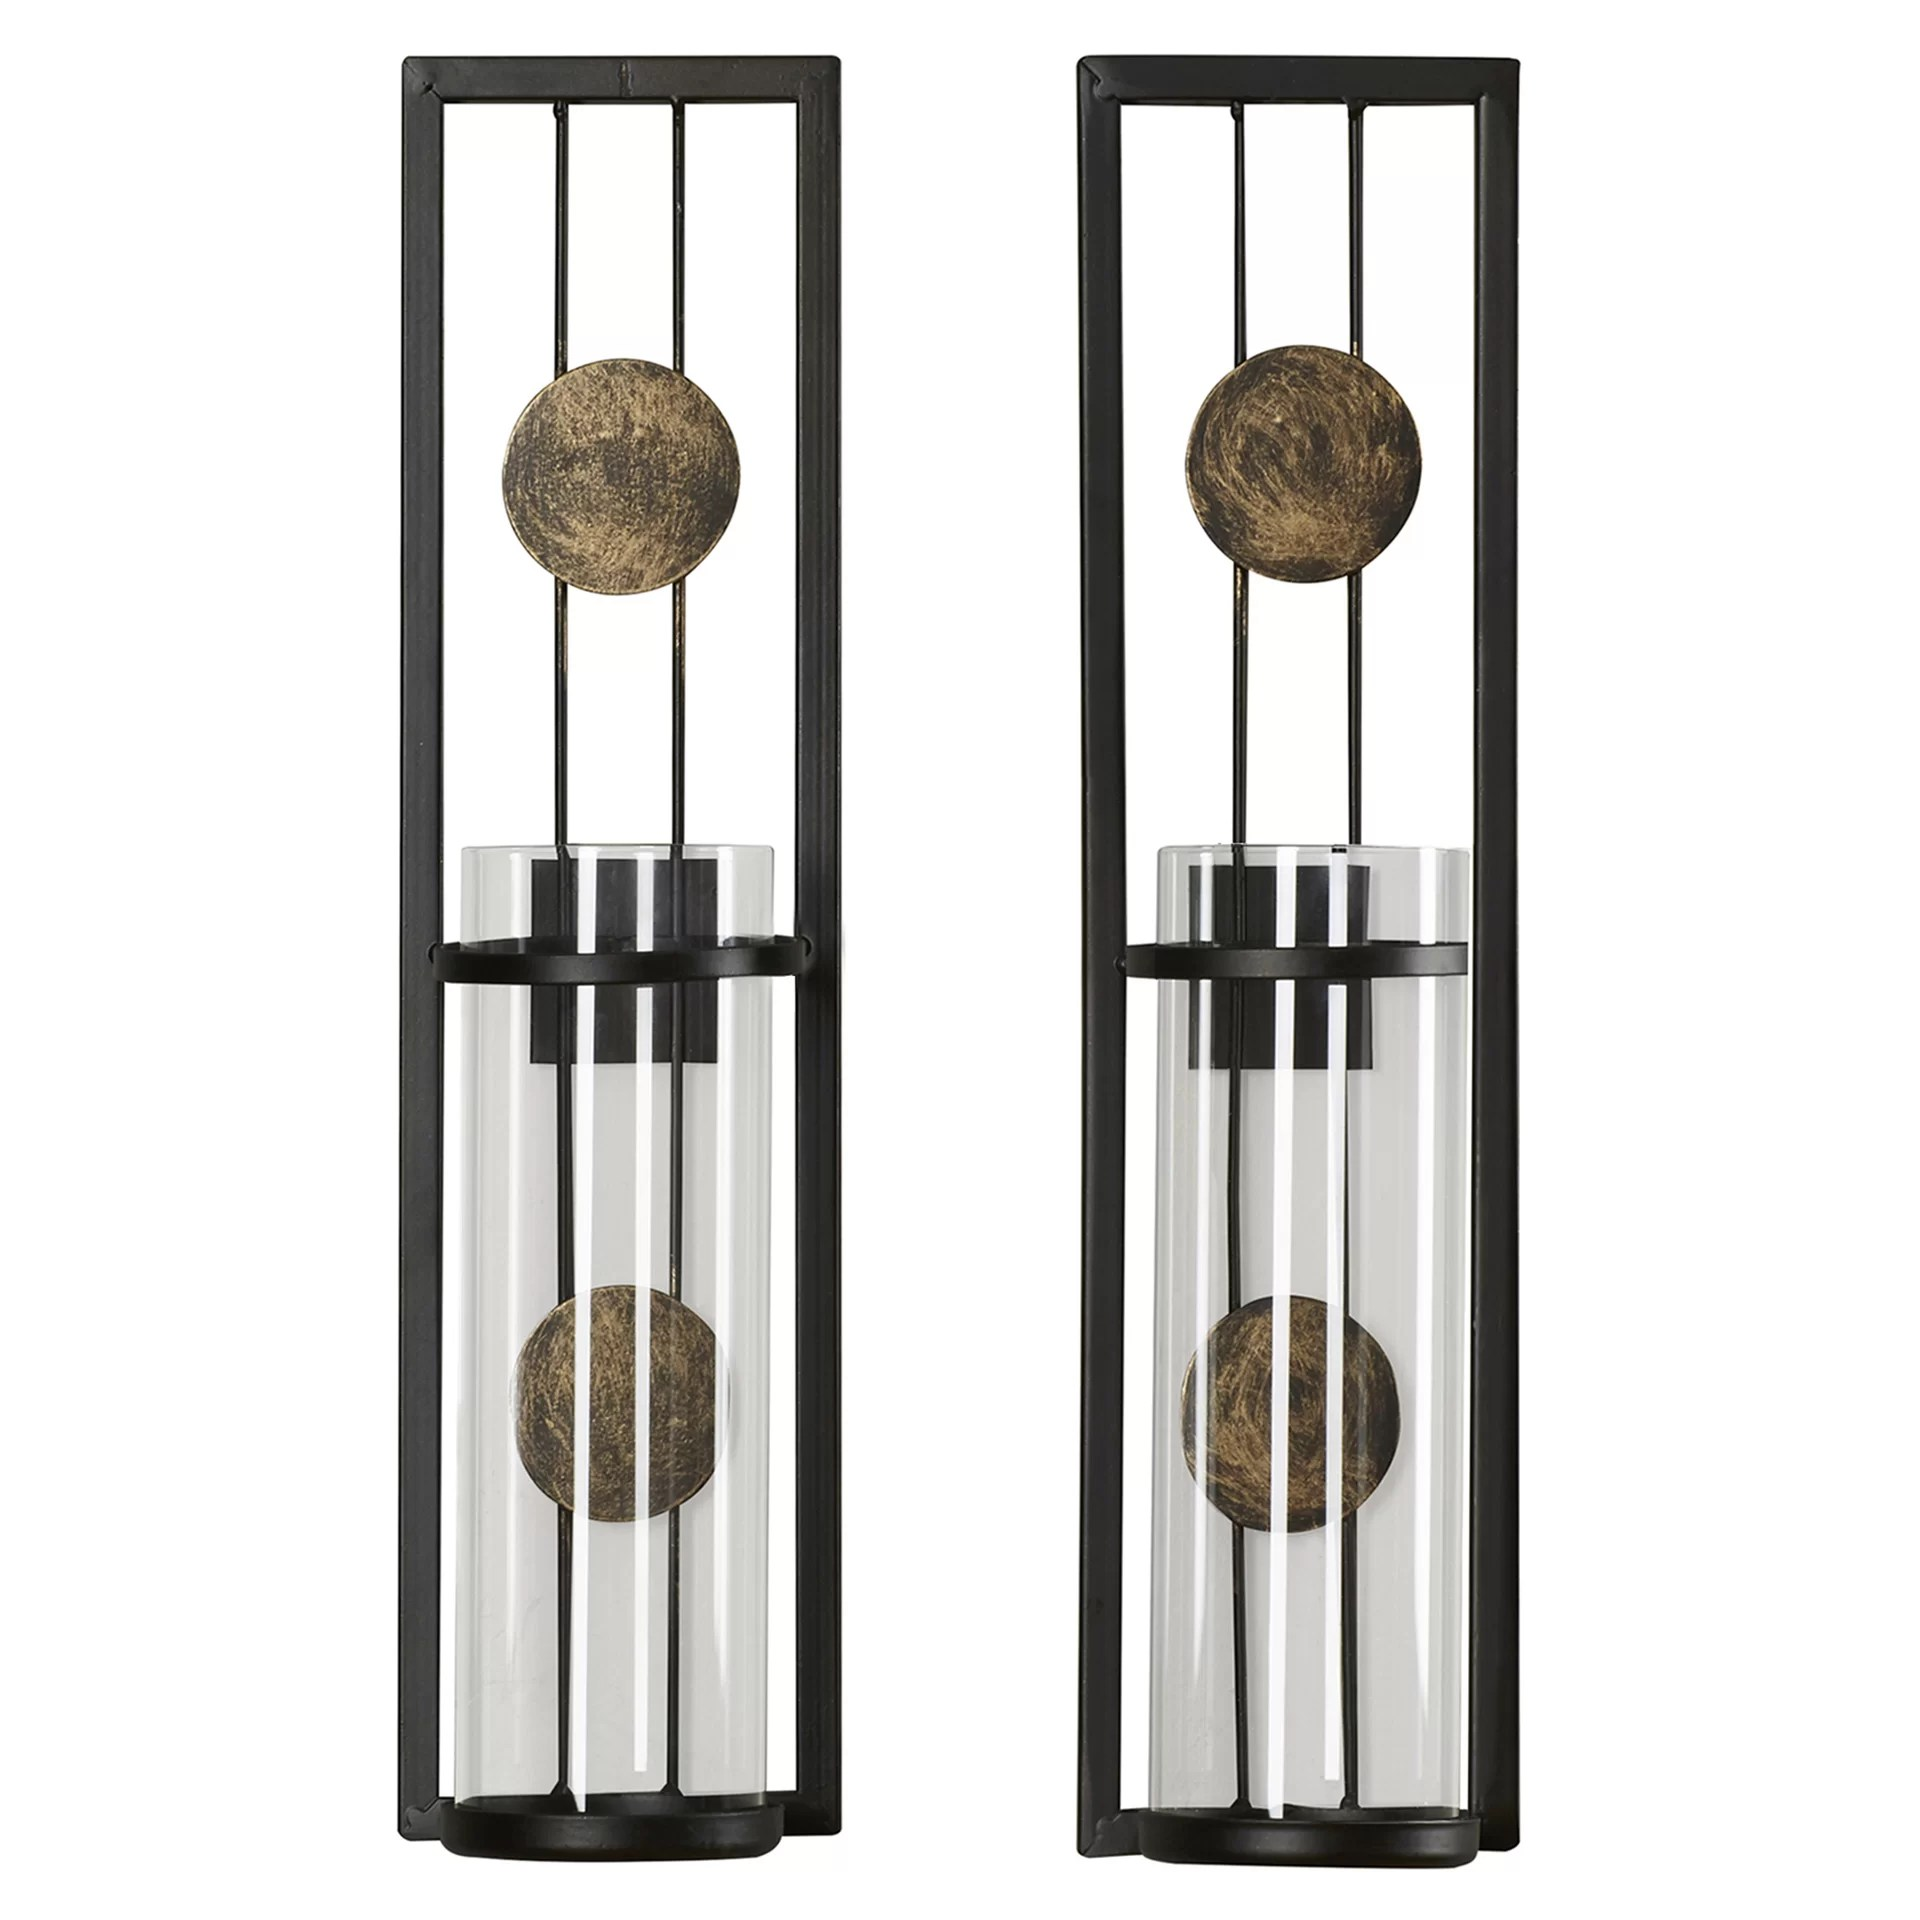 Brayden Studio Contemporary Wall Sconce Candle Holder ... on Modern Wall Sconces id=92410